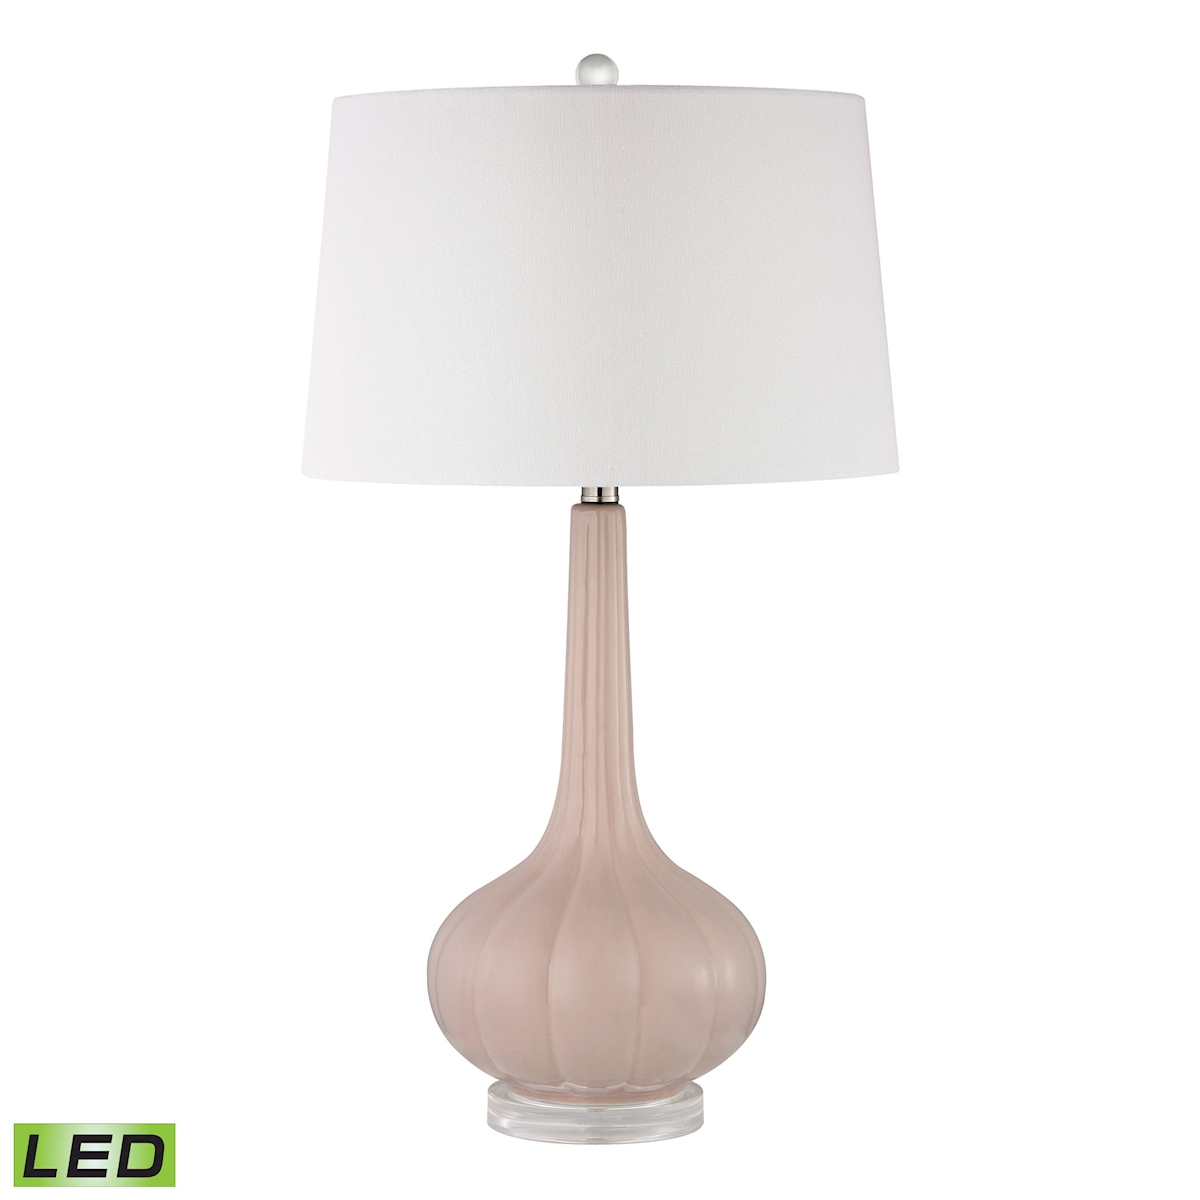 Abbey Lane Ceramic Table Lamp in Pastel Pink LED | Elk Home